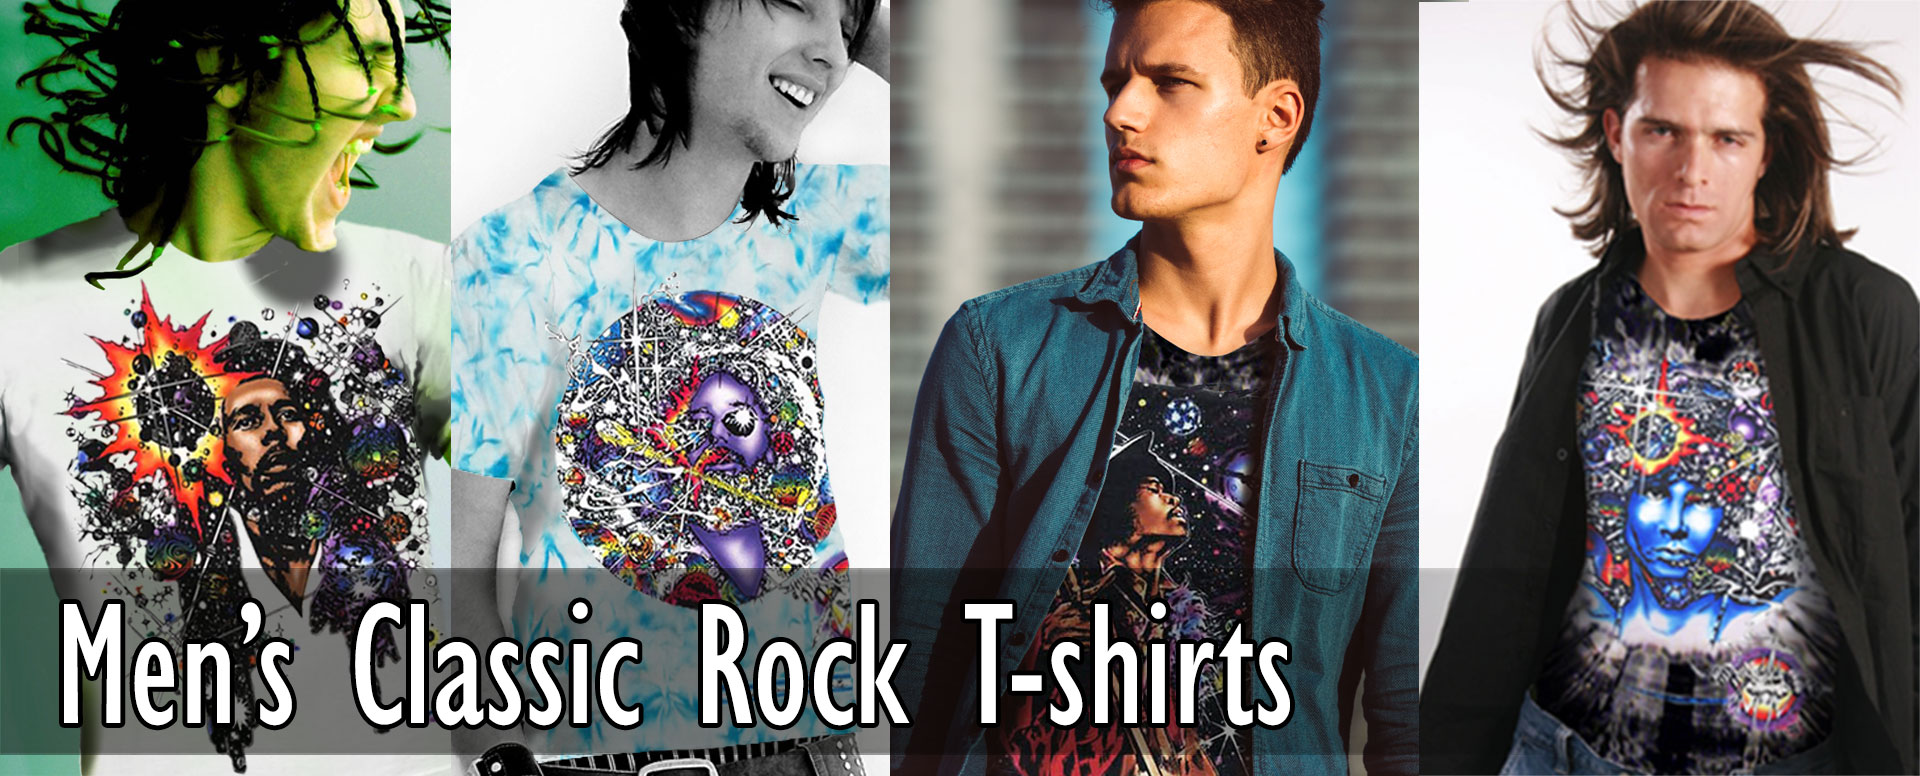 Men's Classic Rock T-shirts